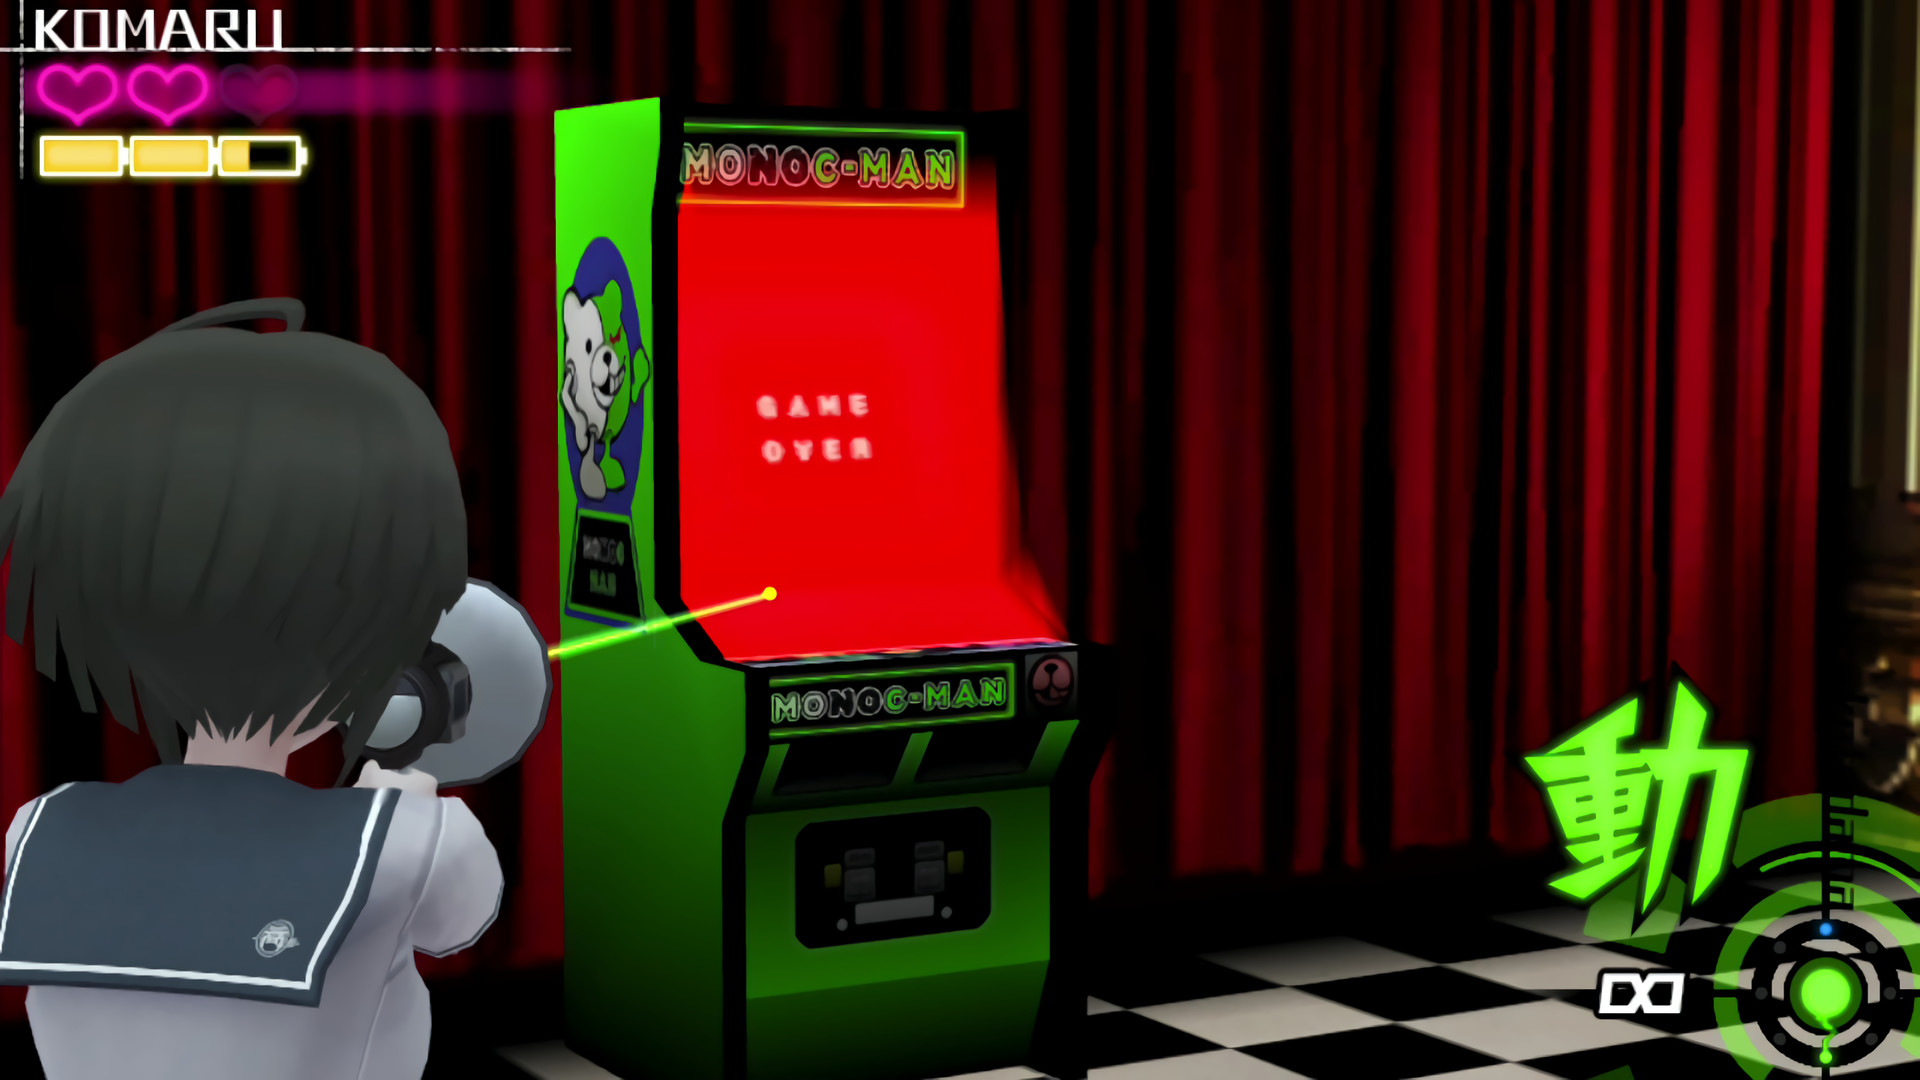 Danganronpa Another Episode: Ultra Despair Girls Screenshot 2